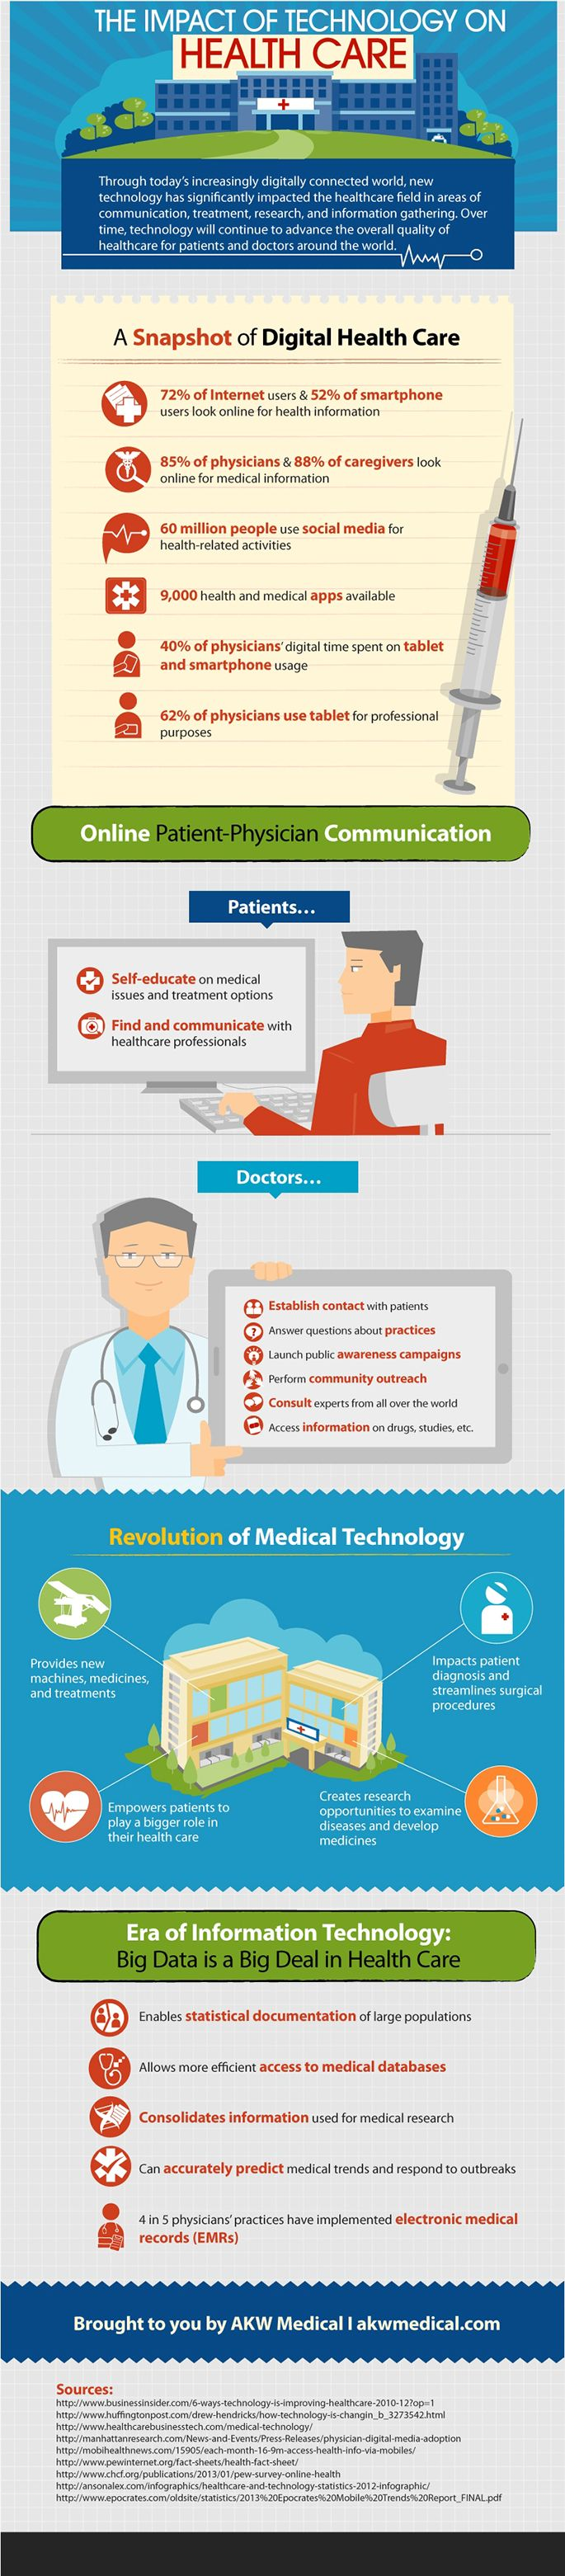 Through today's increasingly digitally connected world, new technology has significantly impacted the healthcare field in areas of communication, treatment, research, and information gathering. Over time, technology will continue to advance the overall quality of healthcare for patients and doctors around the world.